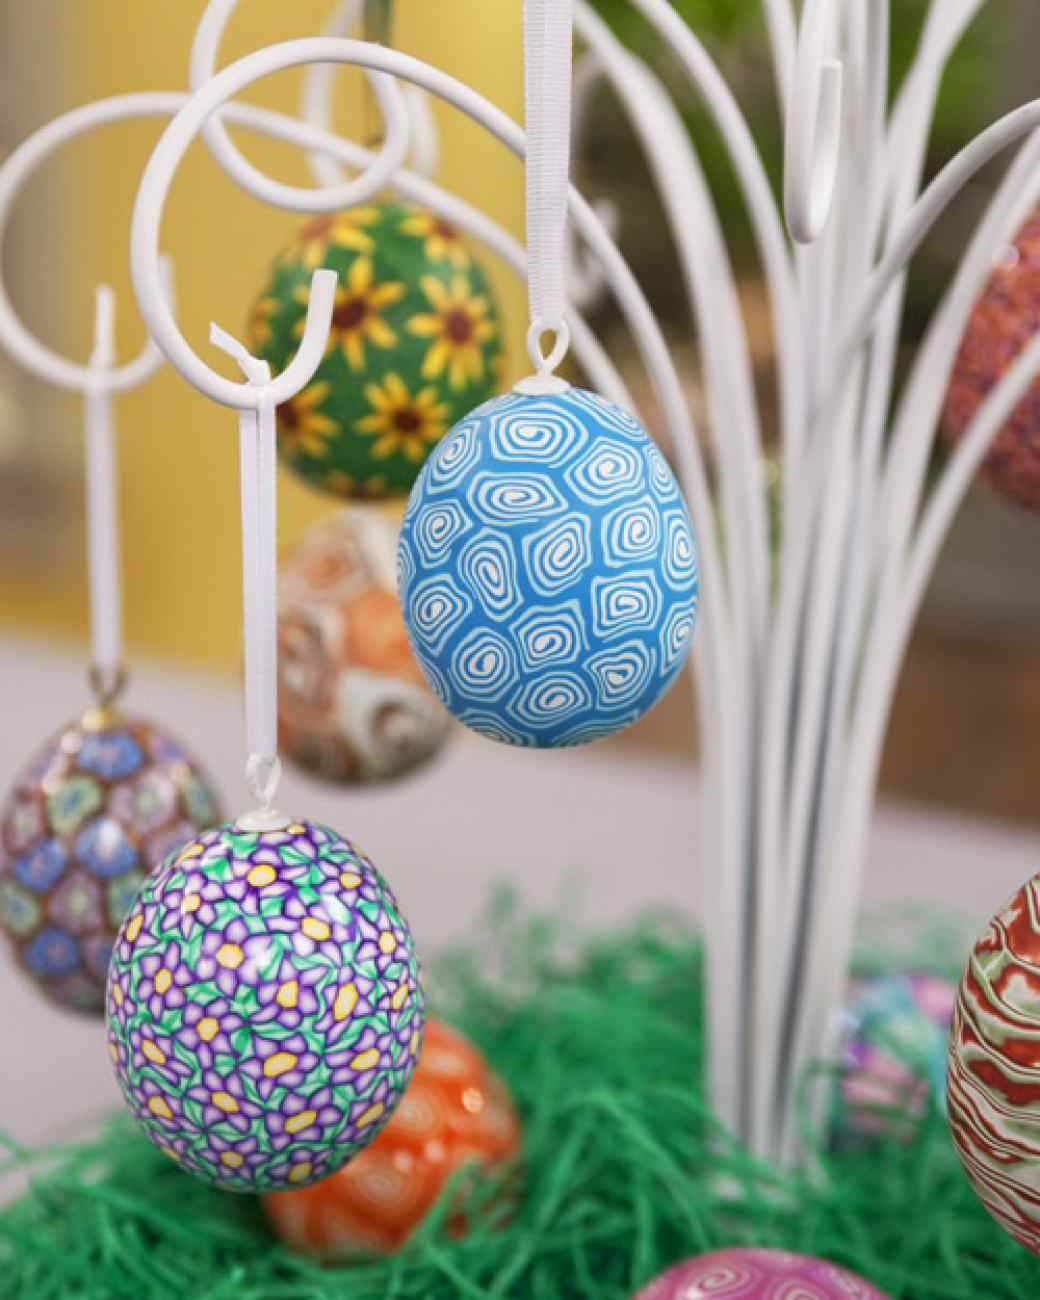 244448-polymer-clay-easter-eggs.jpg